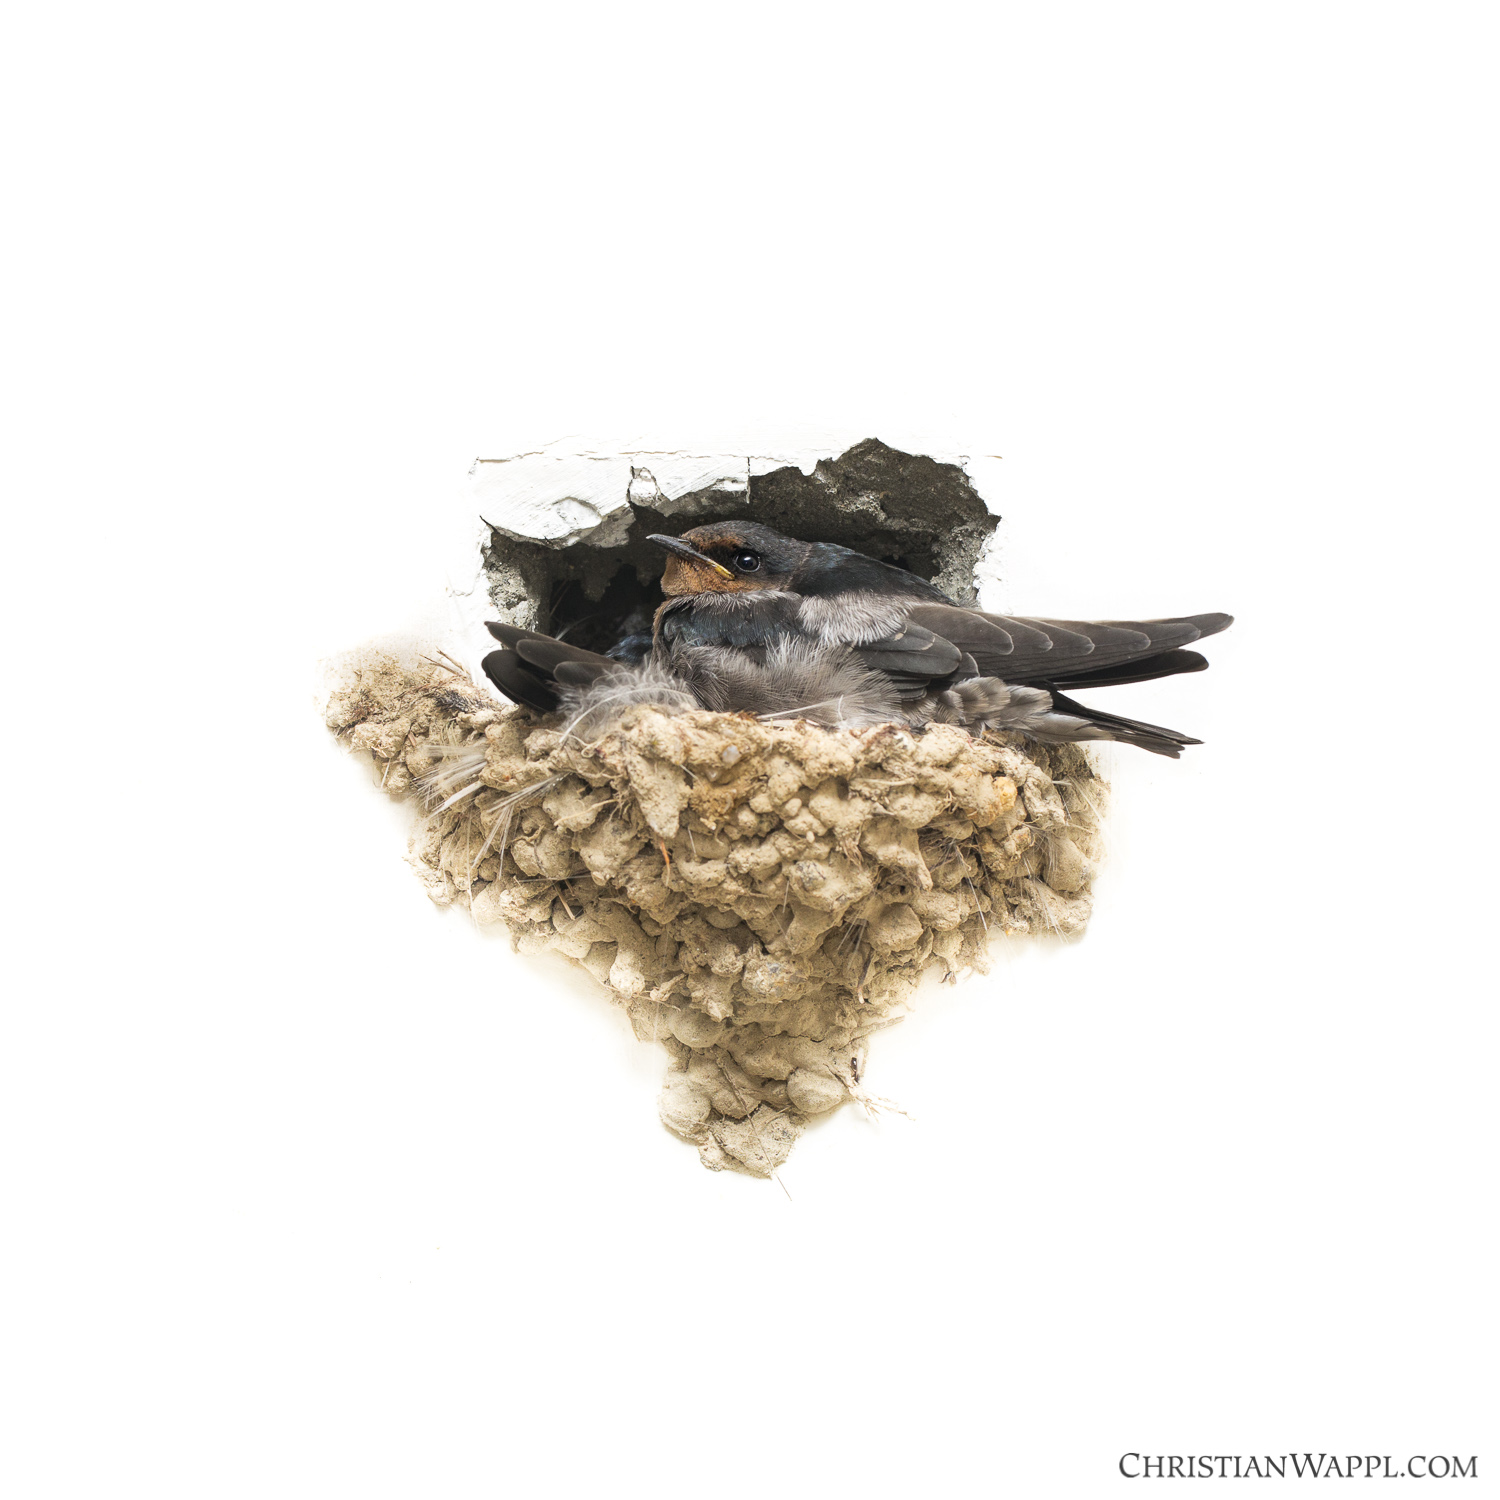 Barn swallows ( Hirundo rustica ) spending the night on an old nest in a golf course, Malaysia